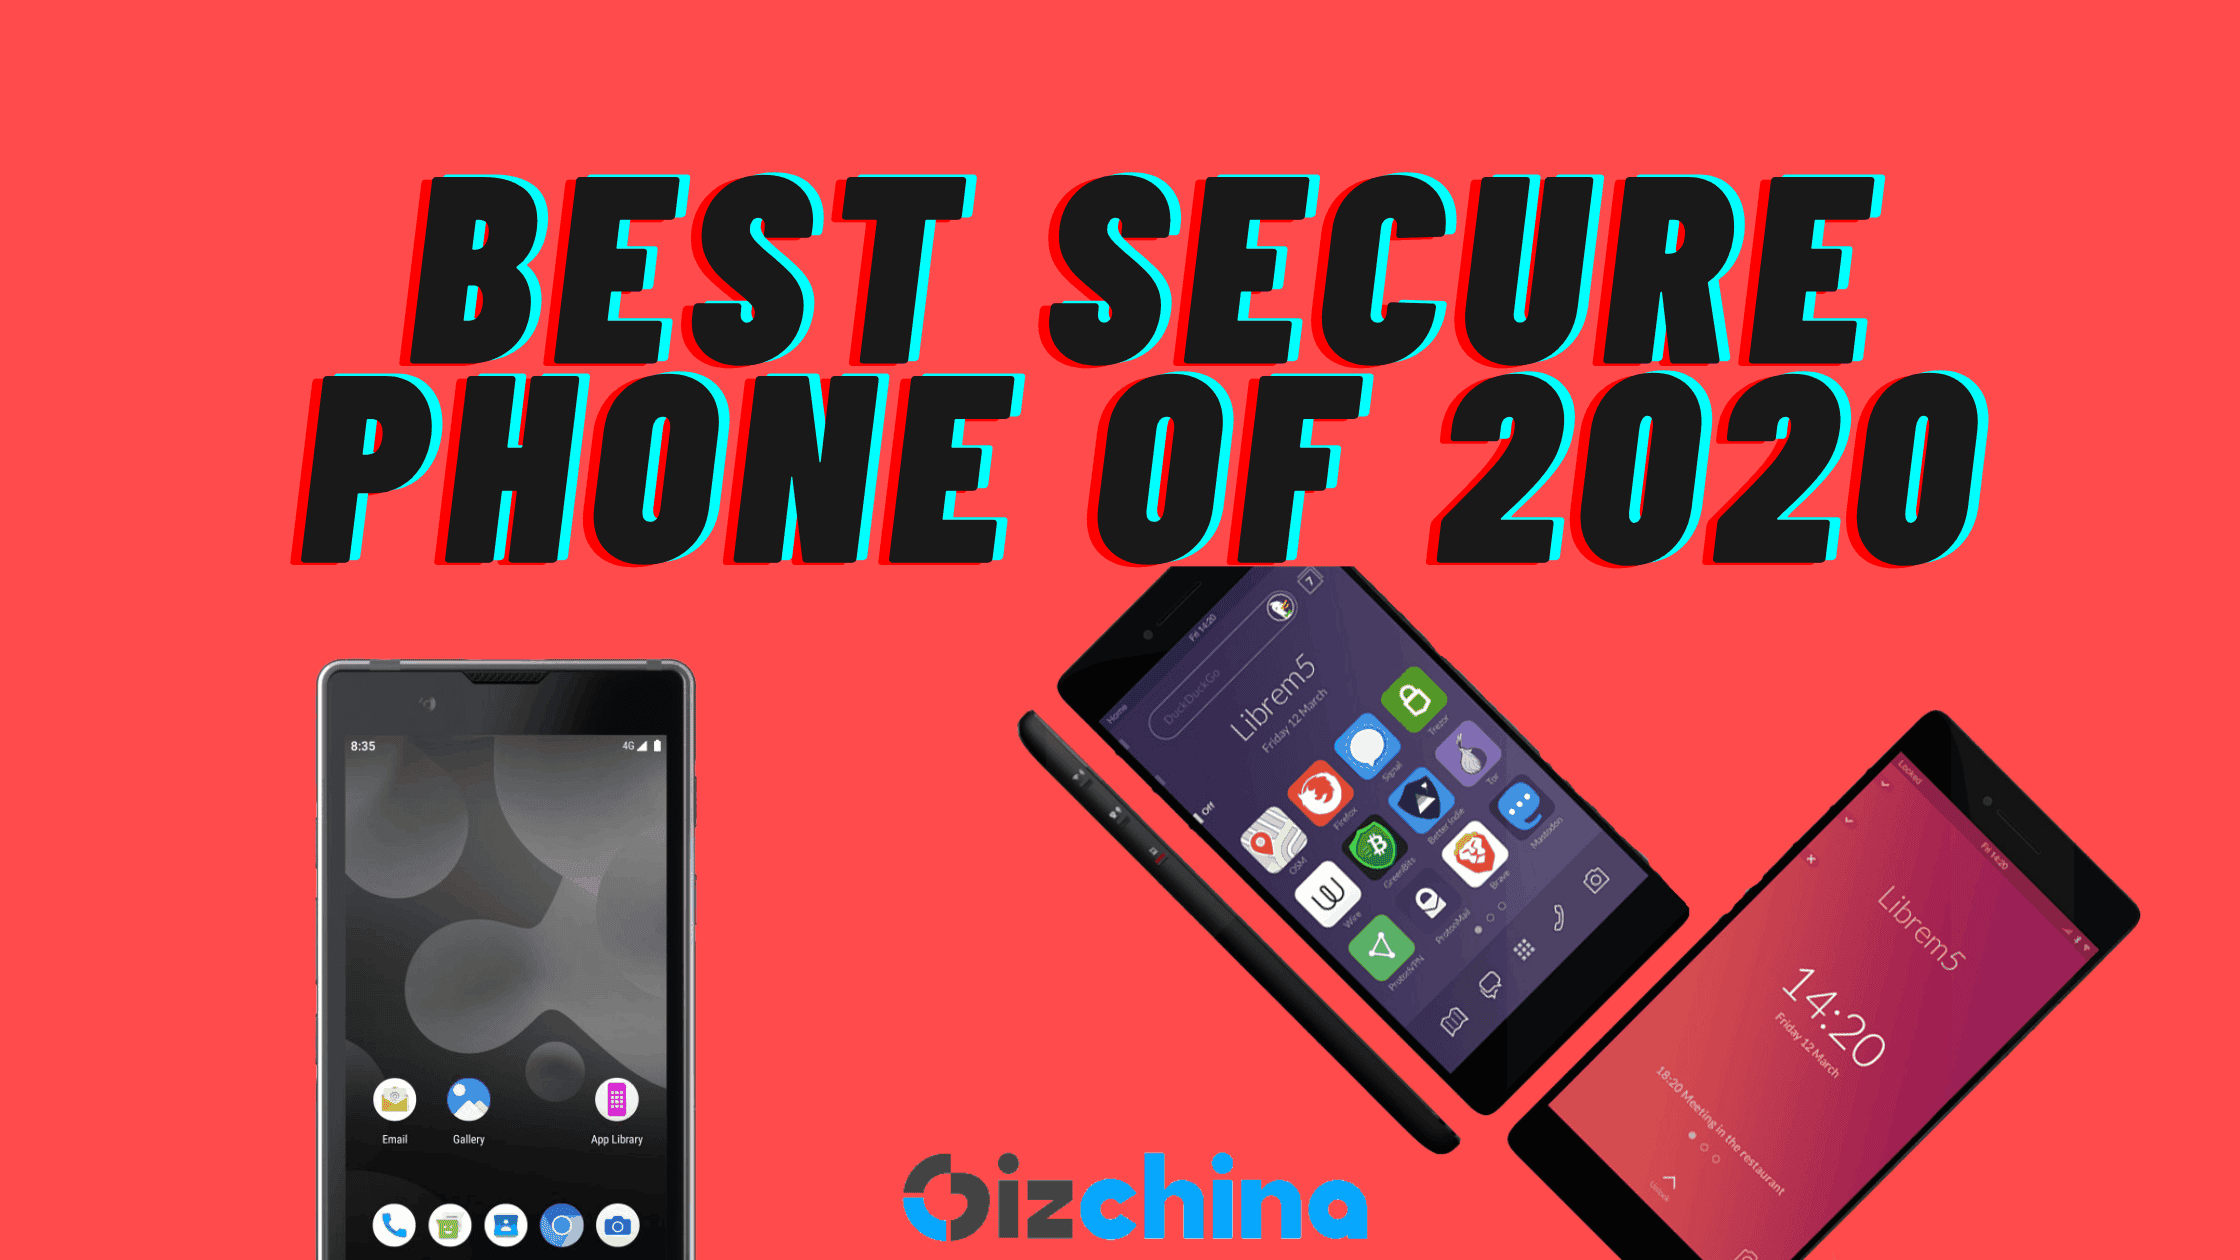 Best Secure Phones of 2020